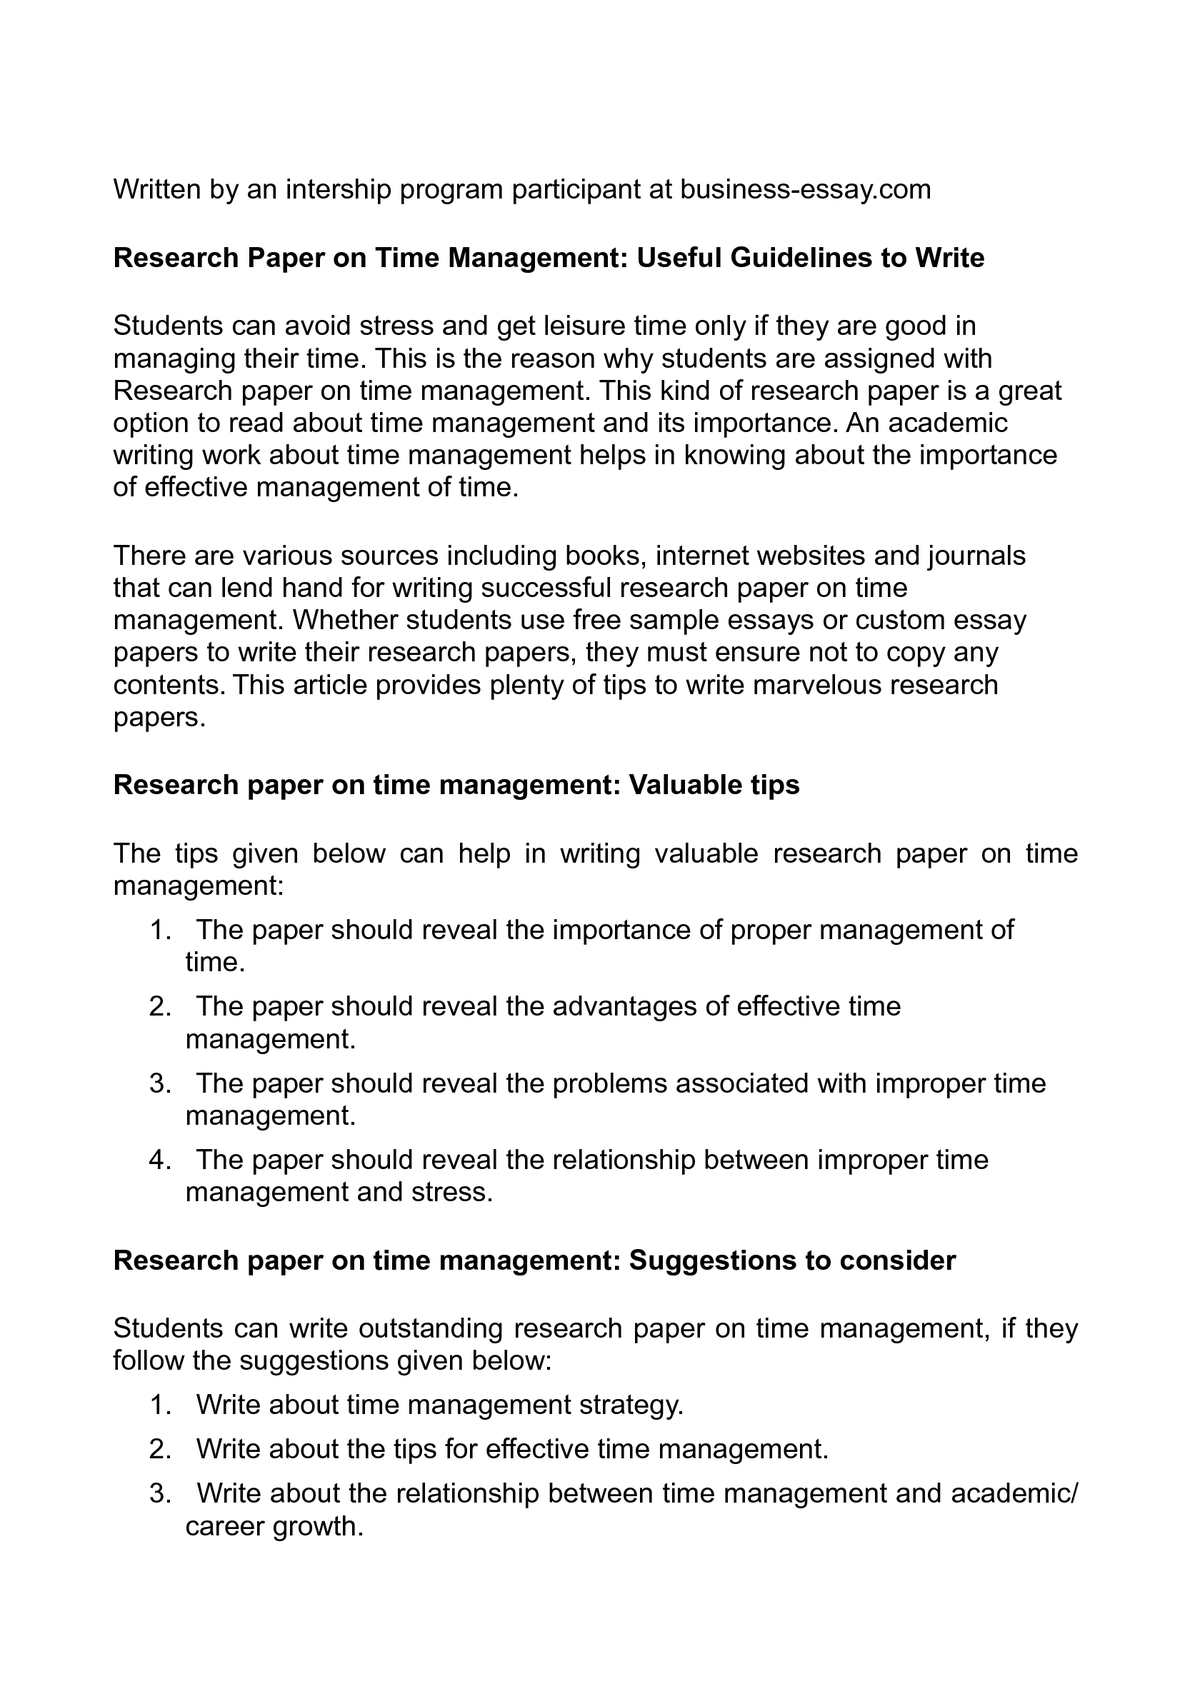 Businessman Essay  Expository Essay Thesis Statement also Topics For An Essay Paper Calamo  Research Paper On Time Management Useful  Proposal Essay Topics Ideas